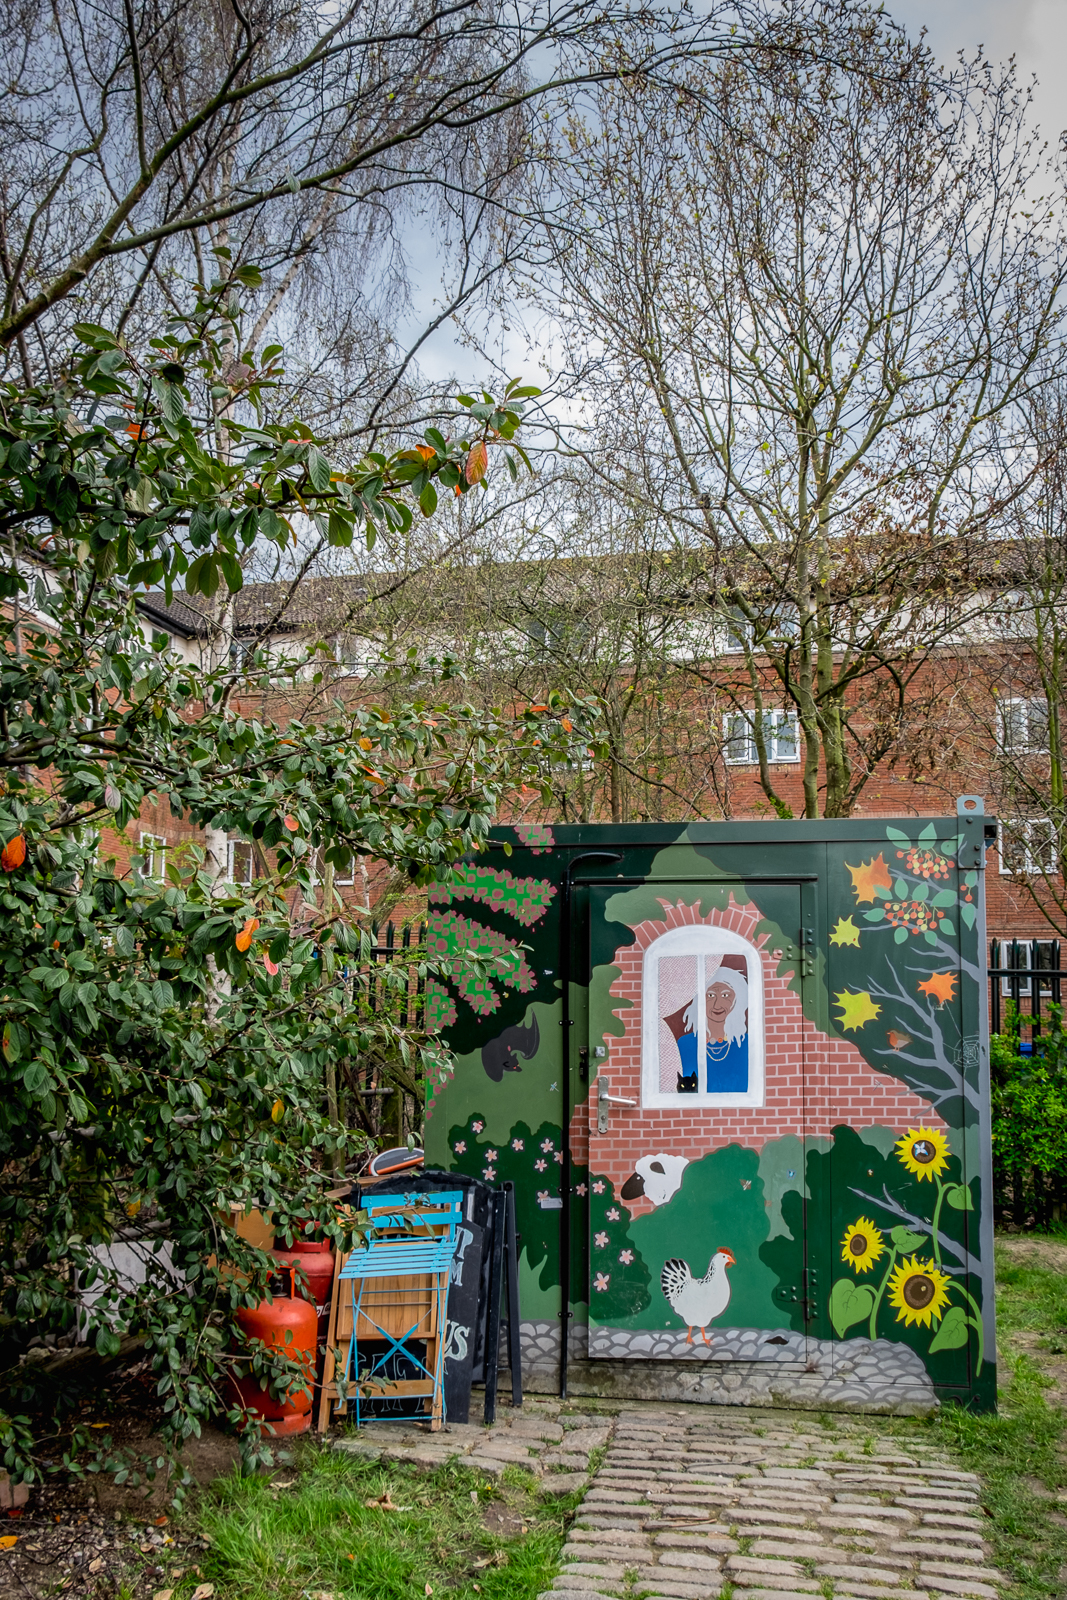 20160413_Southwark_Surrey-Docks-Farm_Pretty-Farm-Shed1